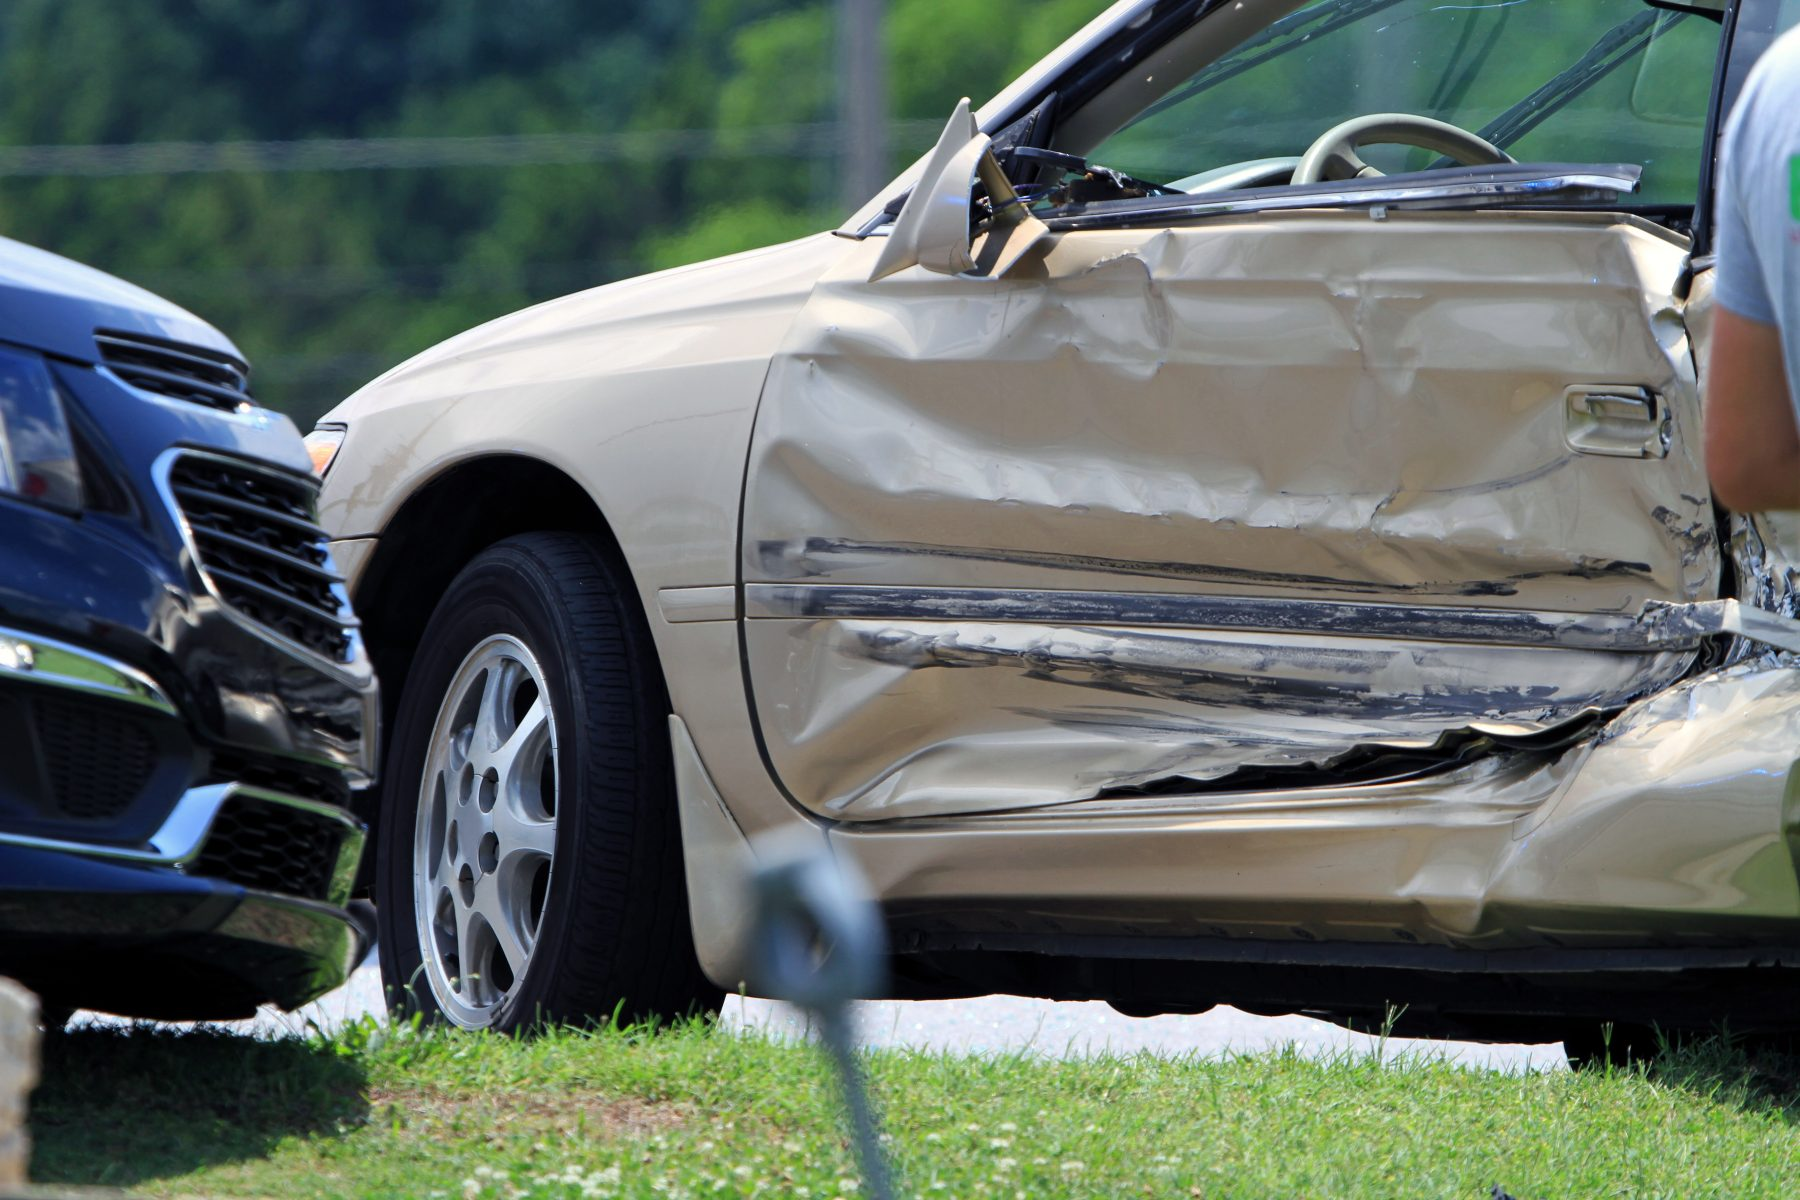 Common Mistakes That Happen After a Car Accident